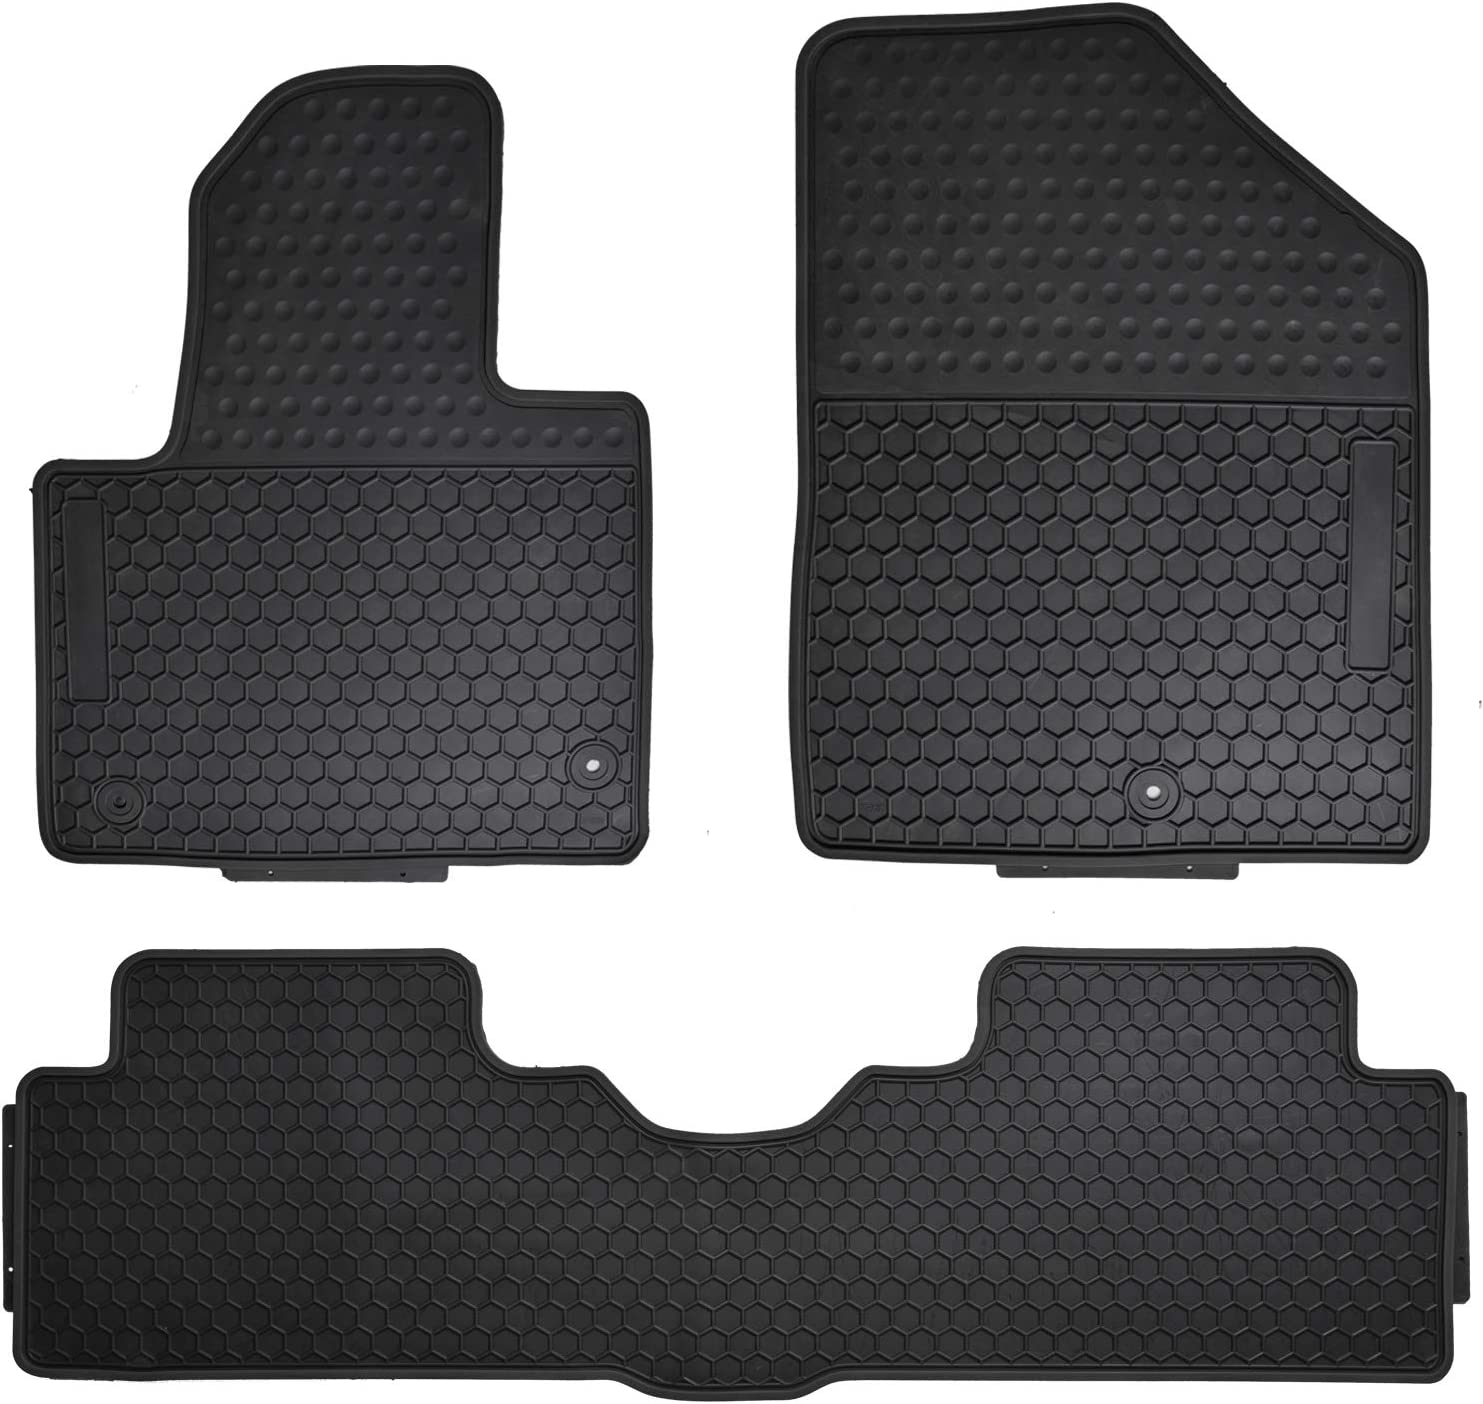 Megiteller Car Floor Mats Custom Fit for Kia Sportage 2017 2018 2019 2020//2019-2020 Hyundai Tucson Odorless Washable Heavy Duty Rubber Floor Liners Front and Rear Row Set Blue All Weather